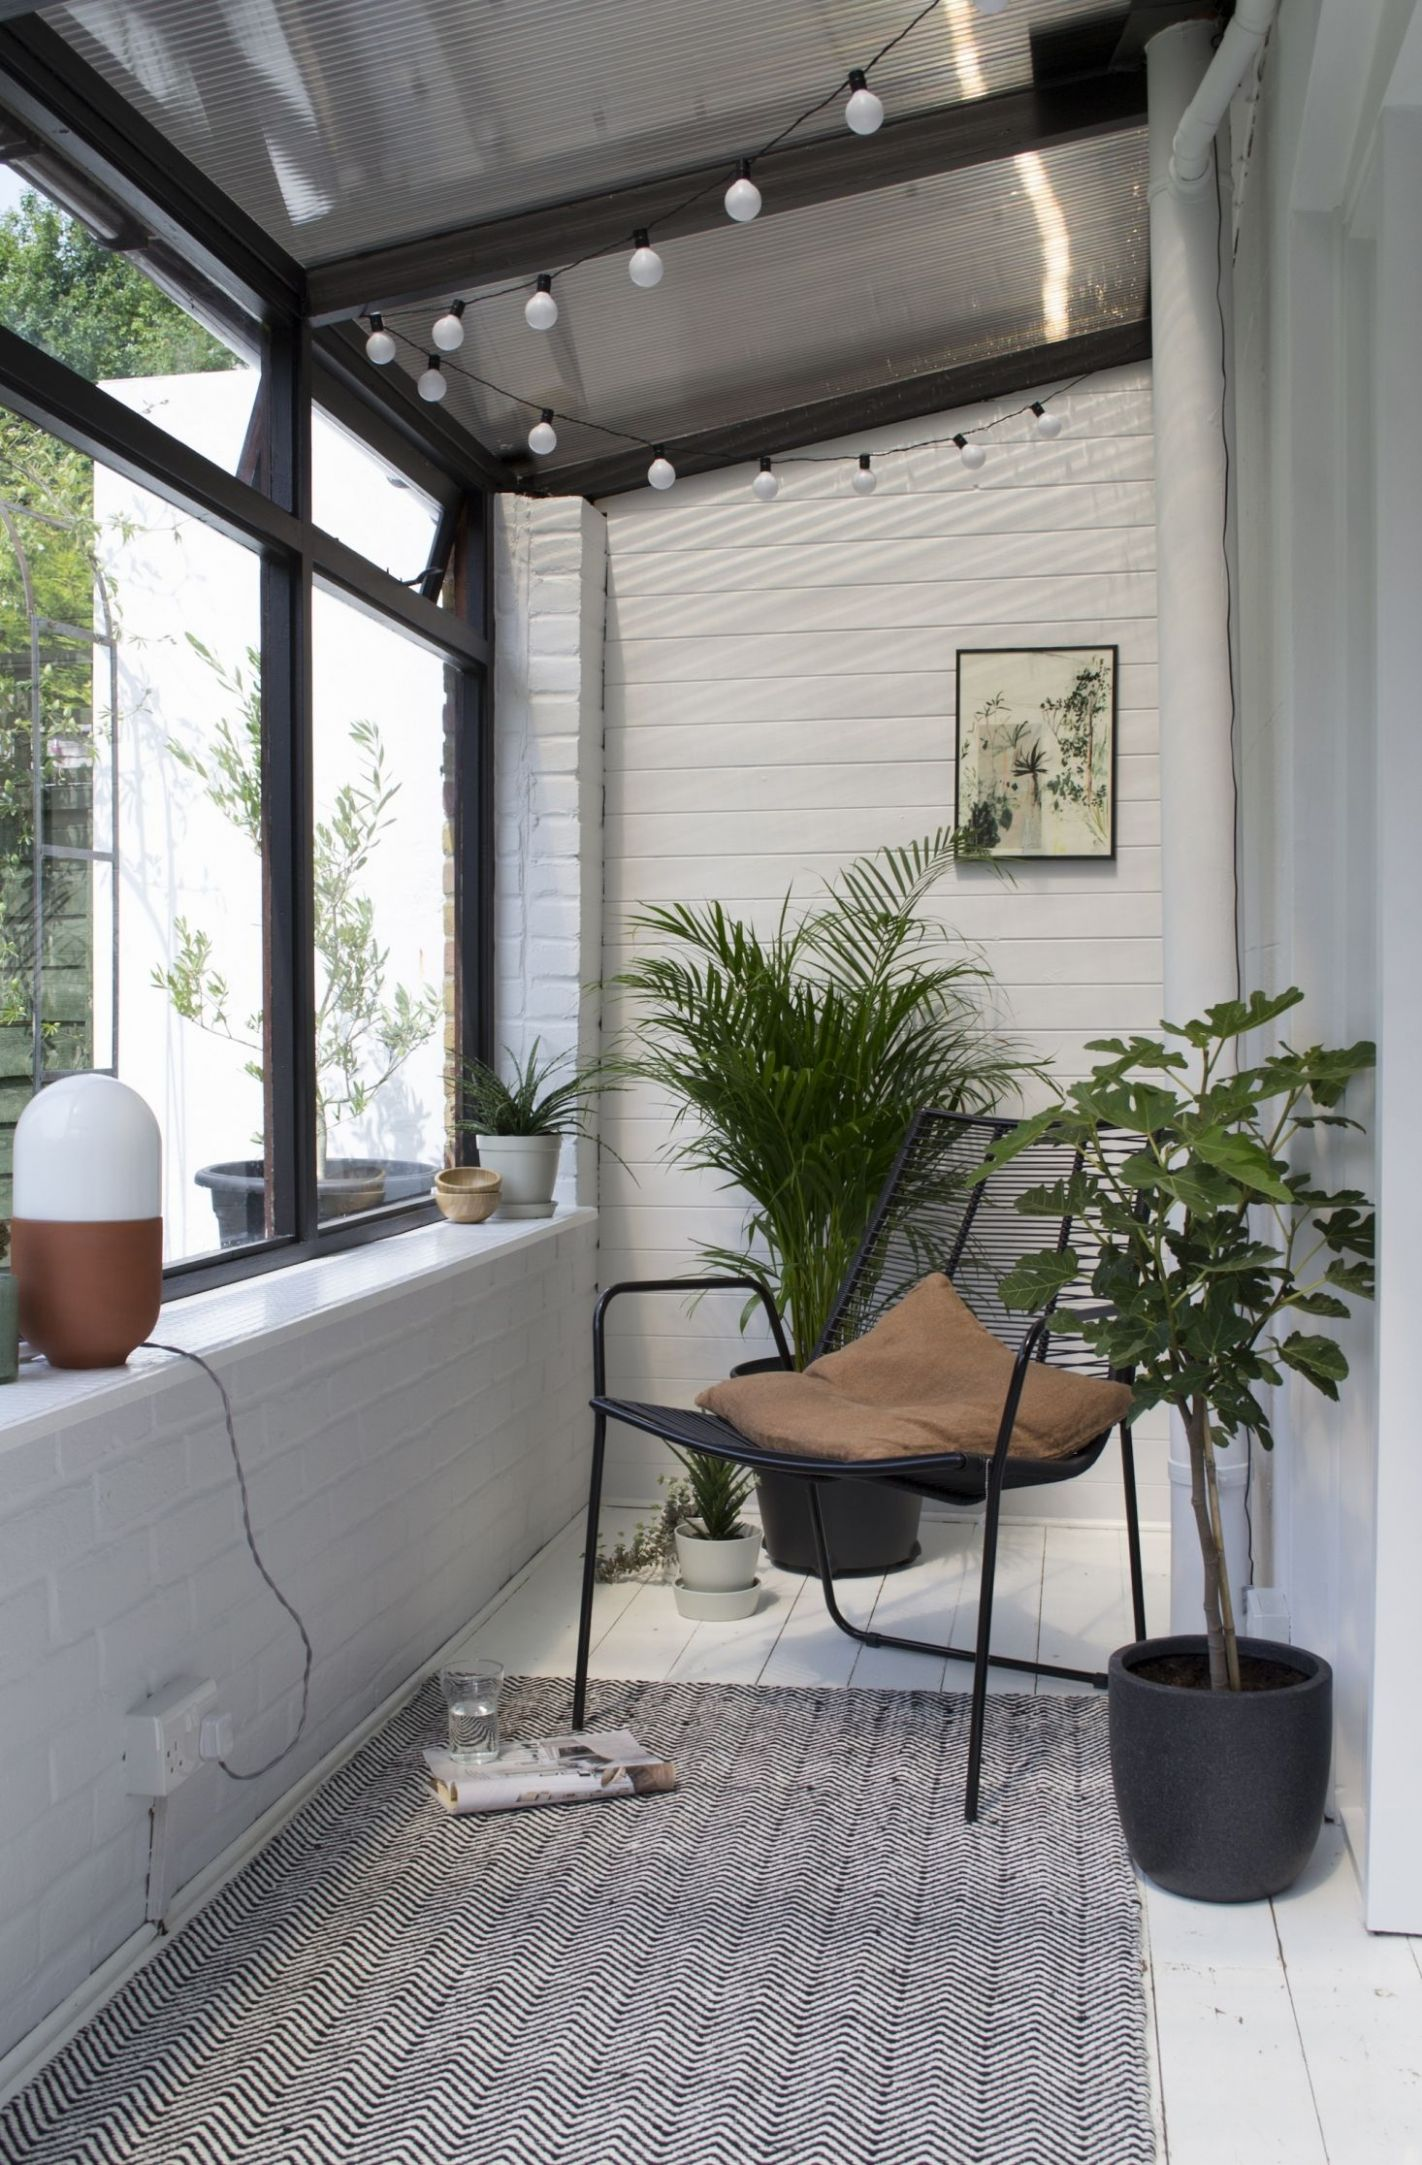 Before & After: Fresh Paint and New Scandinavian Style for a ..